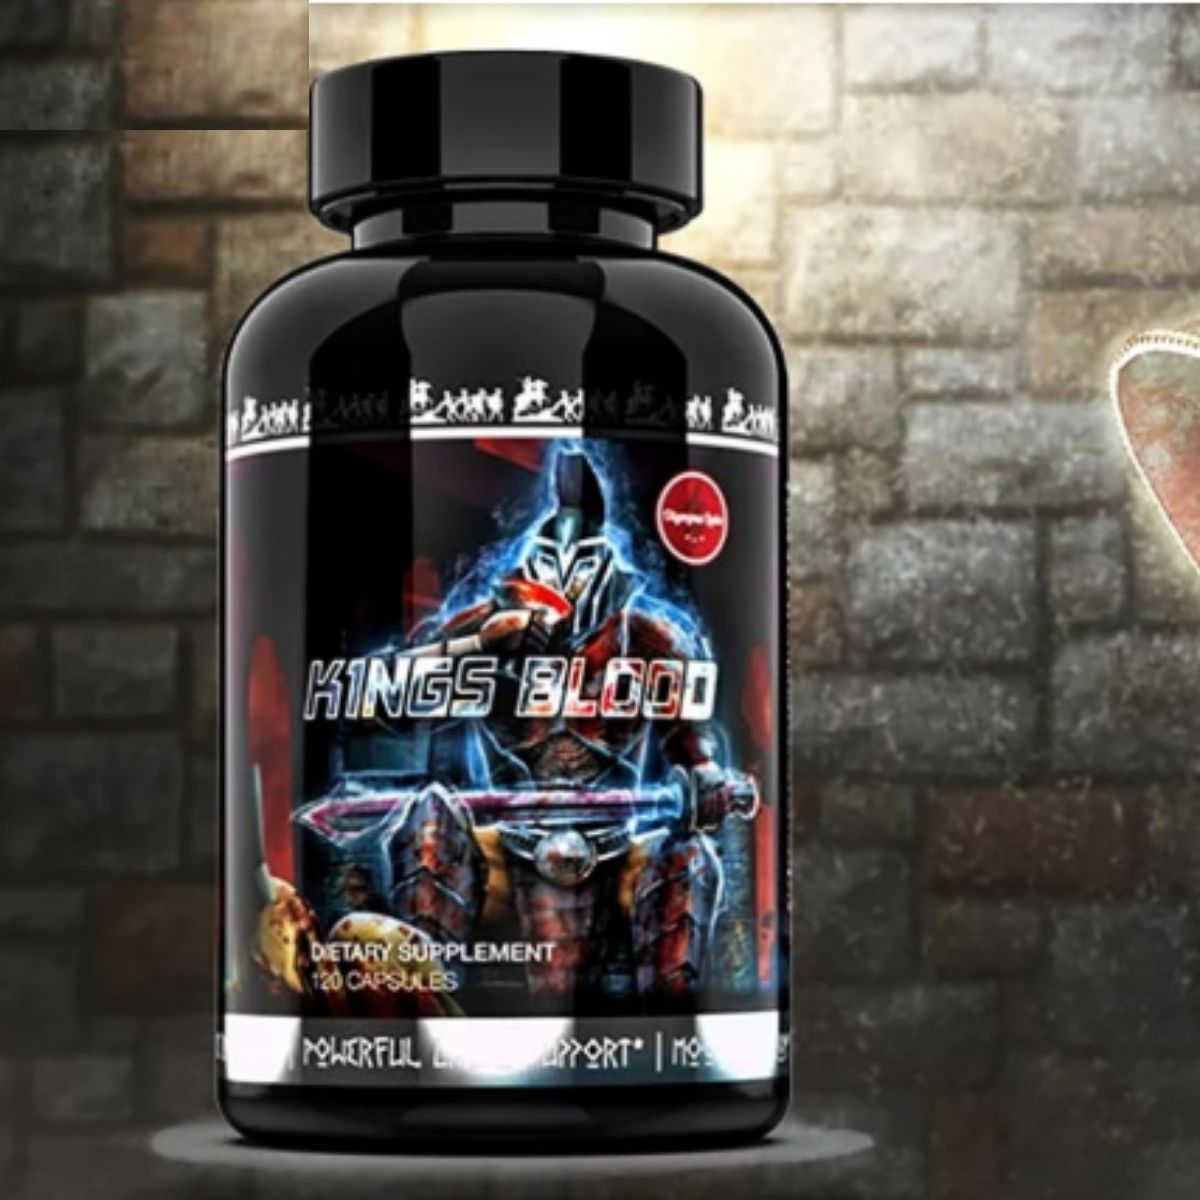 Olympus Labs K1ngs Blood Returns is Back, New Formula Revealed